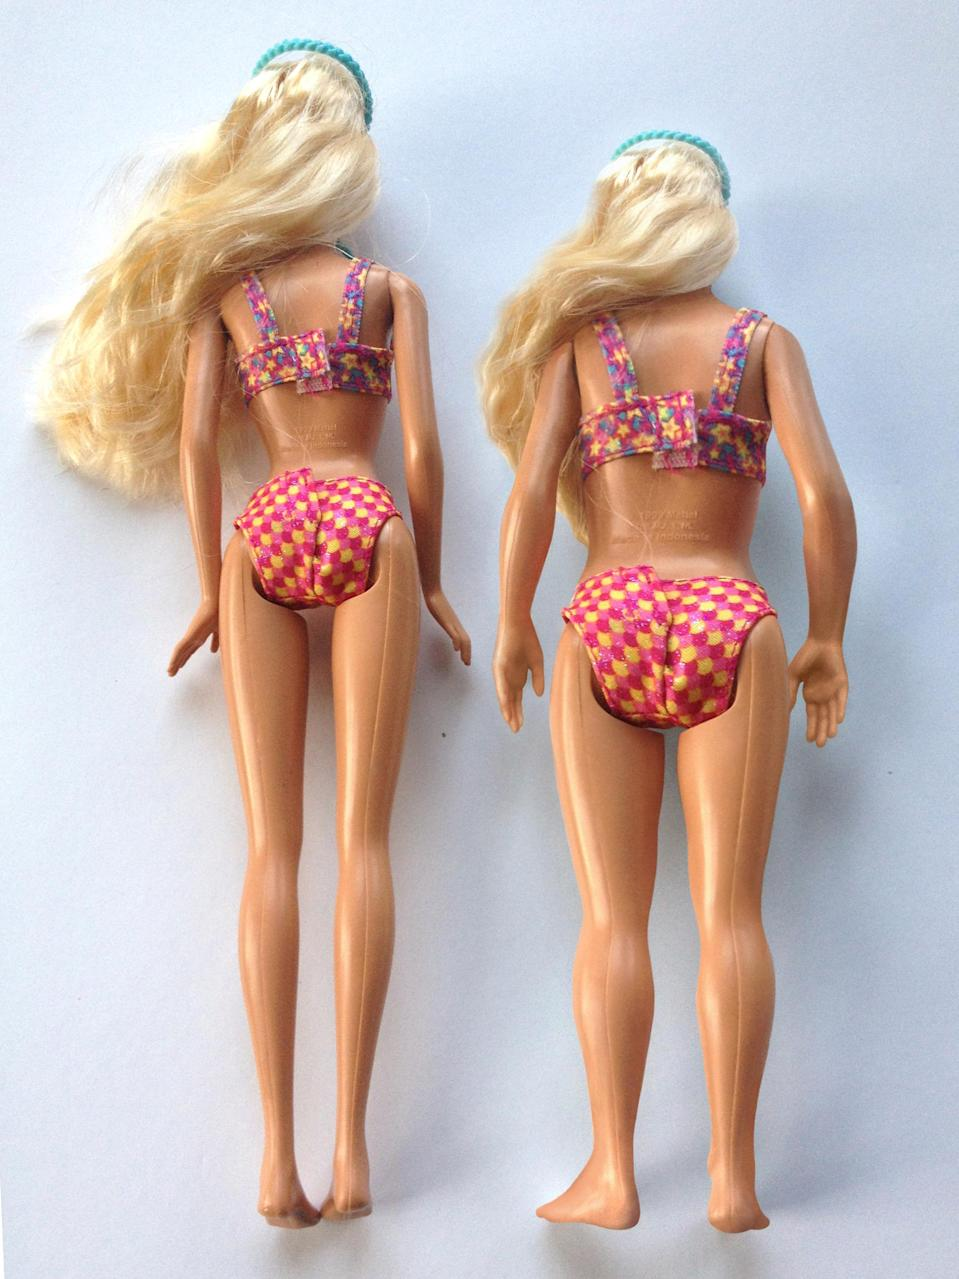 """<div class=""""caption-credit""""> Photo by: Nickolay Lamm</div>Barbie at a human scale, Lamm said, would have the following unrealistic measurements: 69 inches tall with a 36-inch bust, 18-inch waist, 33-inch hips, 22-inch head circumference, and a 9-inch neck circumference."""